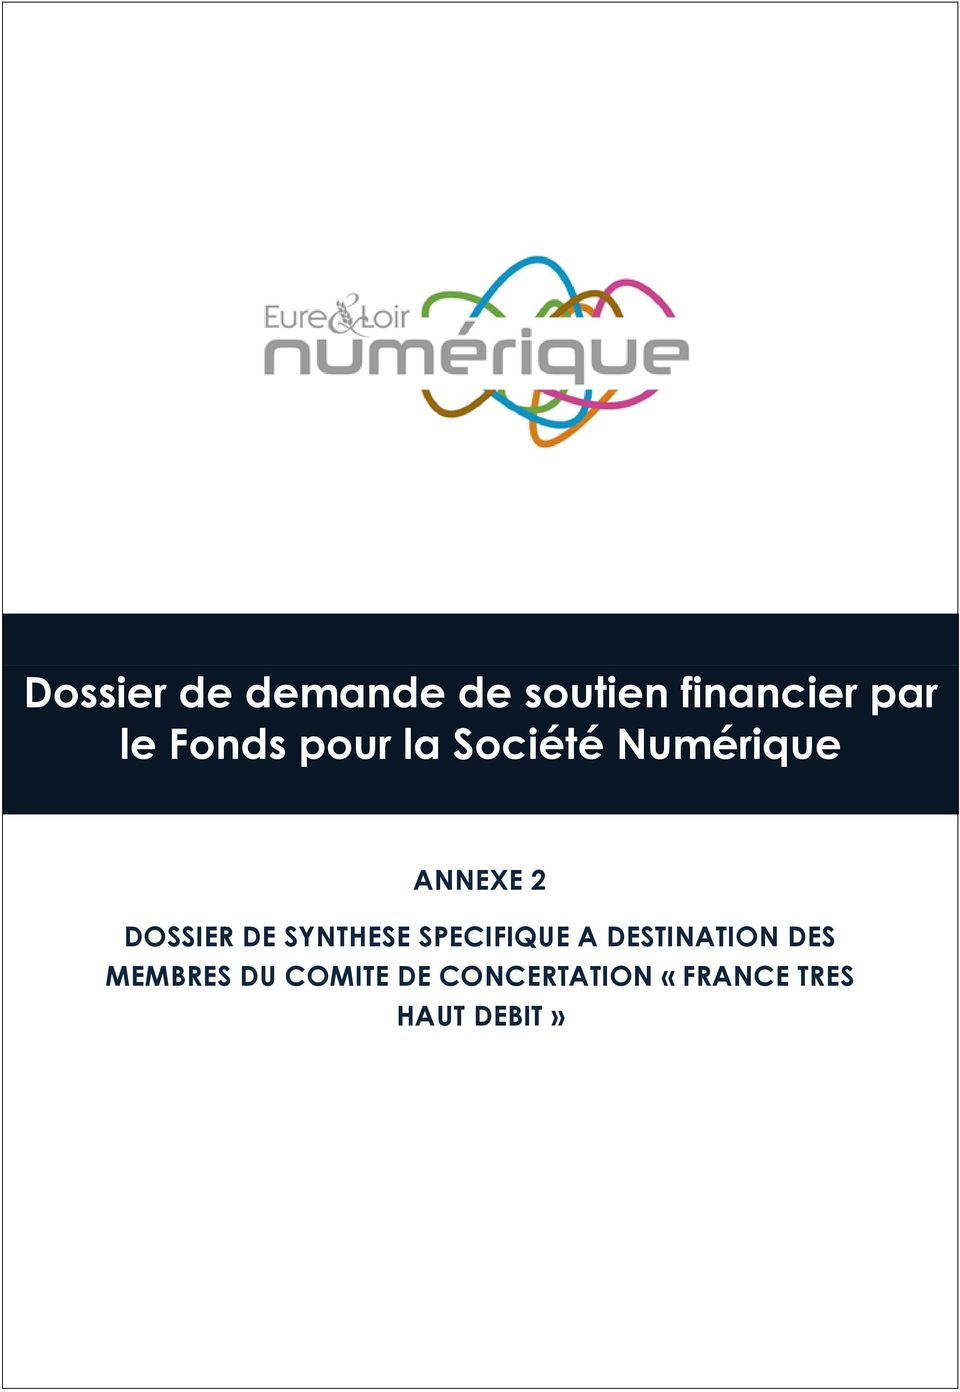 DE SYNTHESE SPECIFIQUE A DESTINATION DES MEMBRES